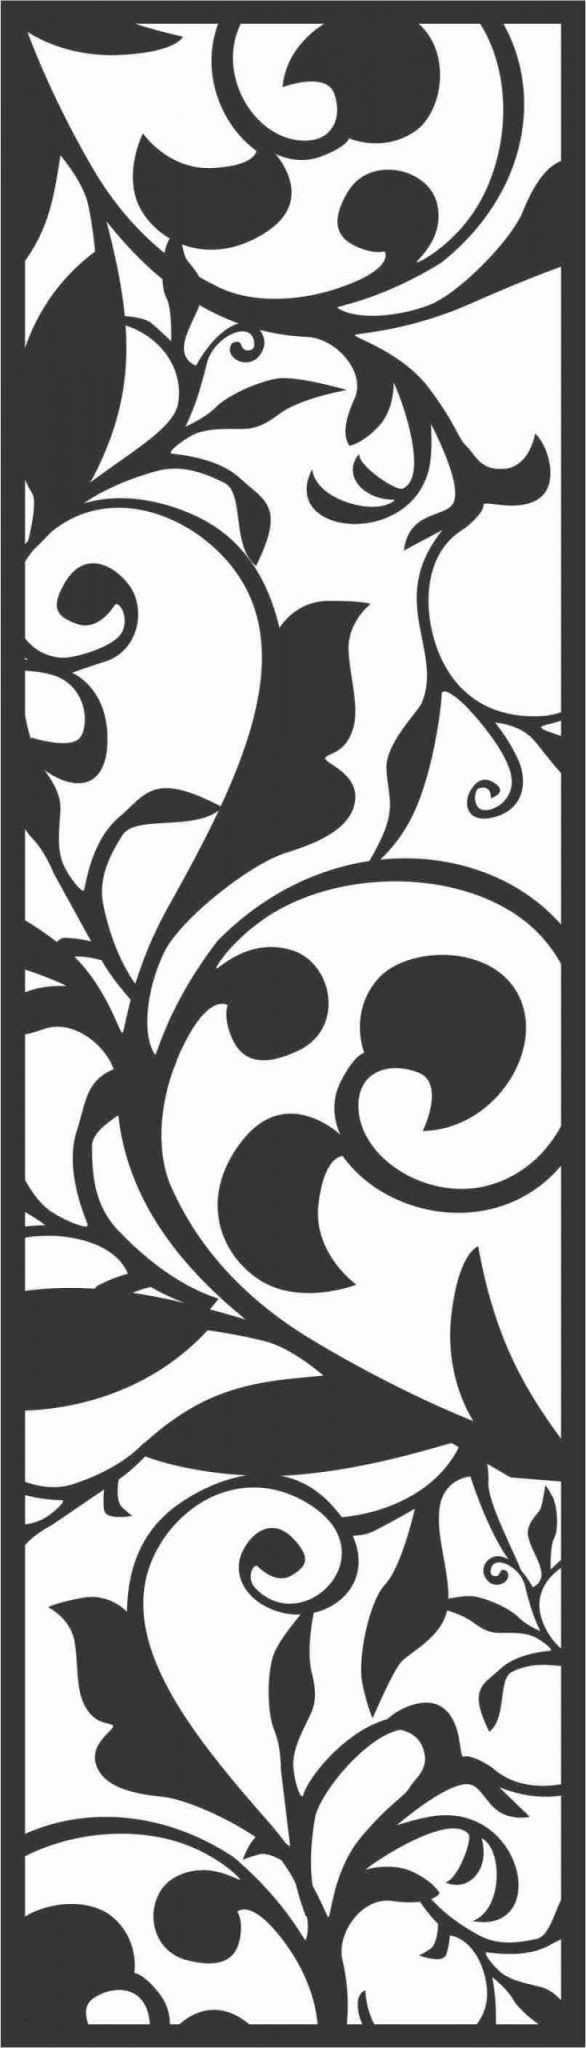 Floral Screen Patterns Design 50 Free DXF File